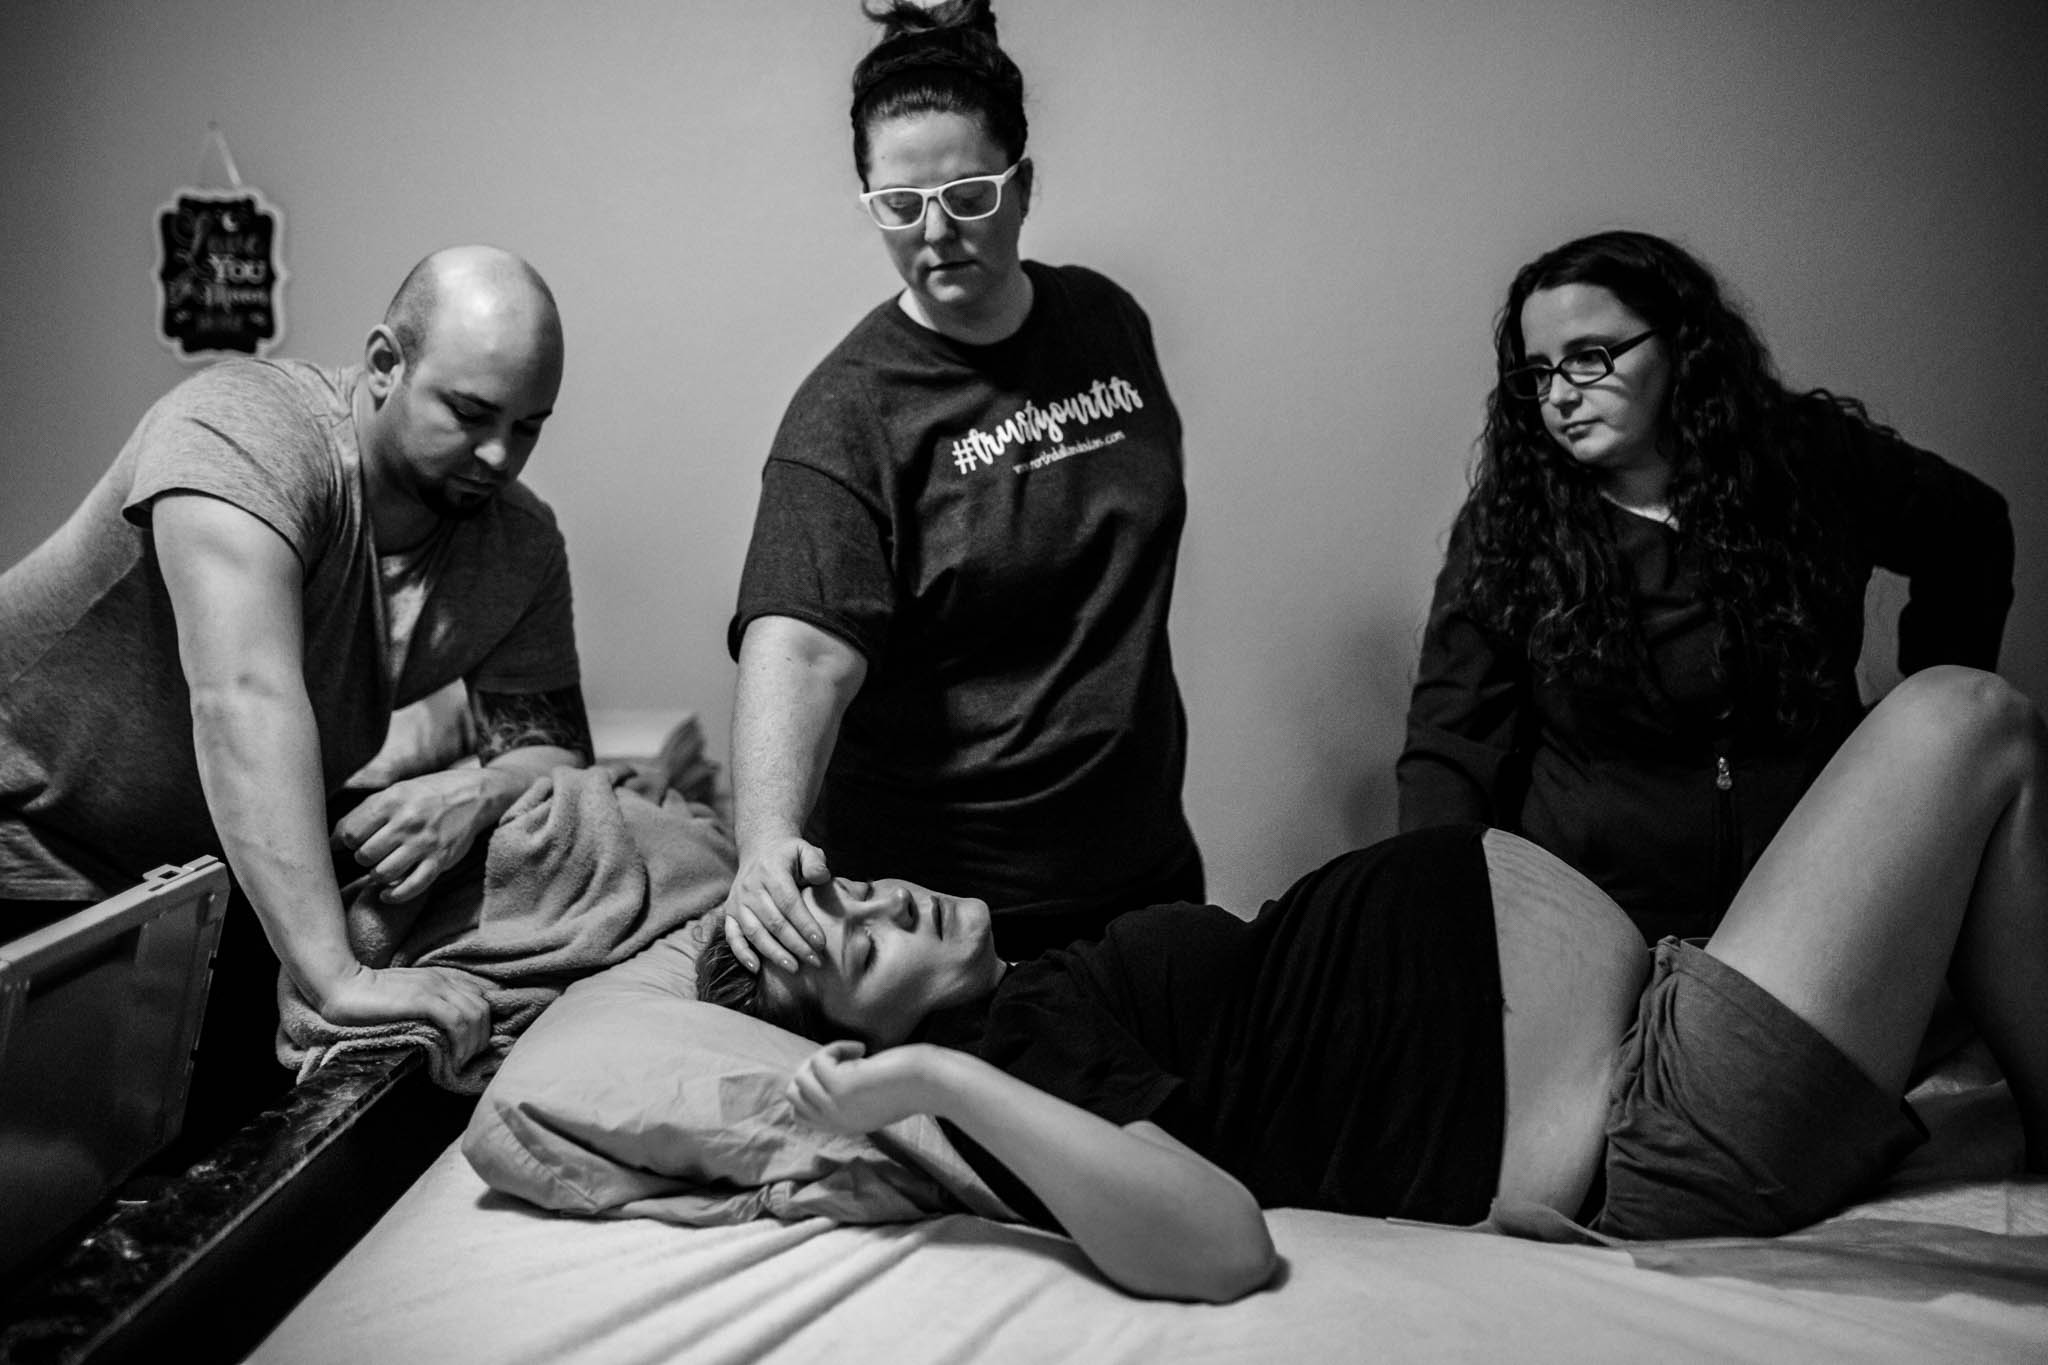 Lawren Rose Photography, a little elm birth photographer, takes an image as a laboring mom is laying down with her birth team surrounding her